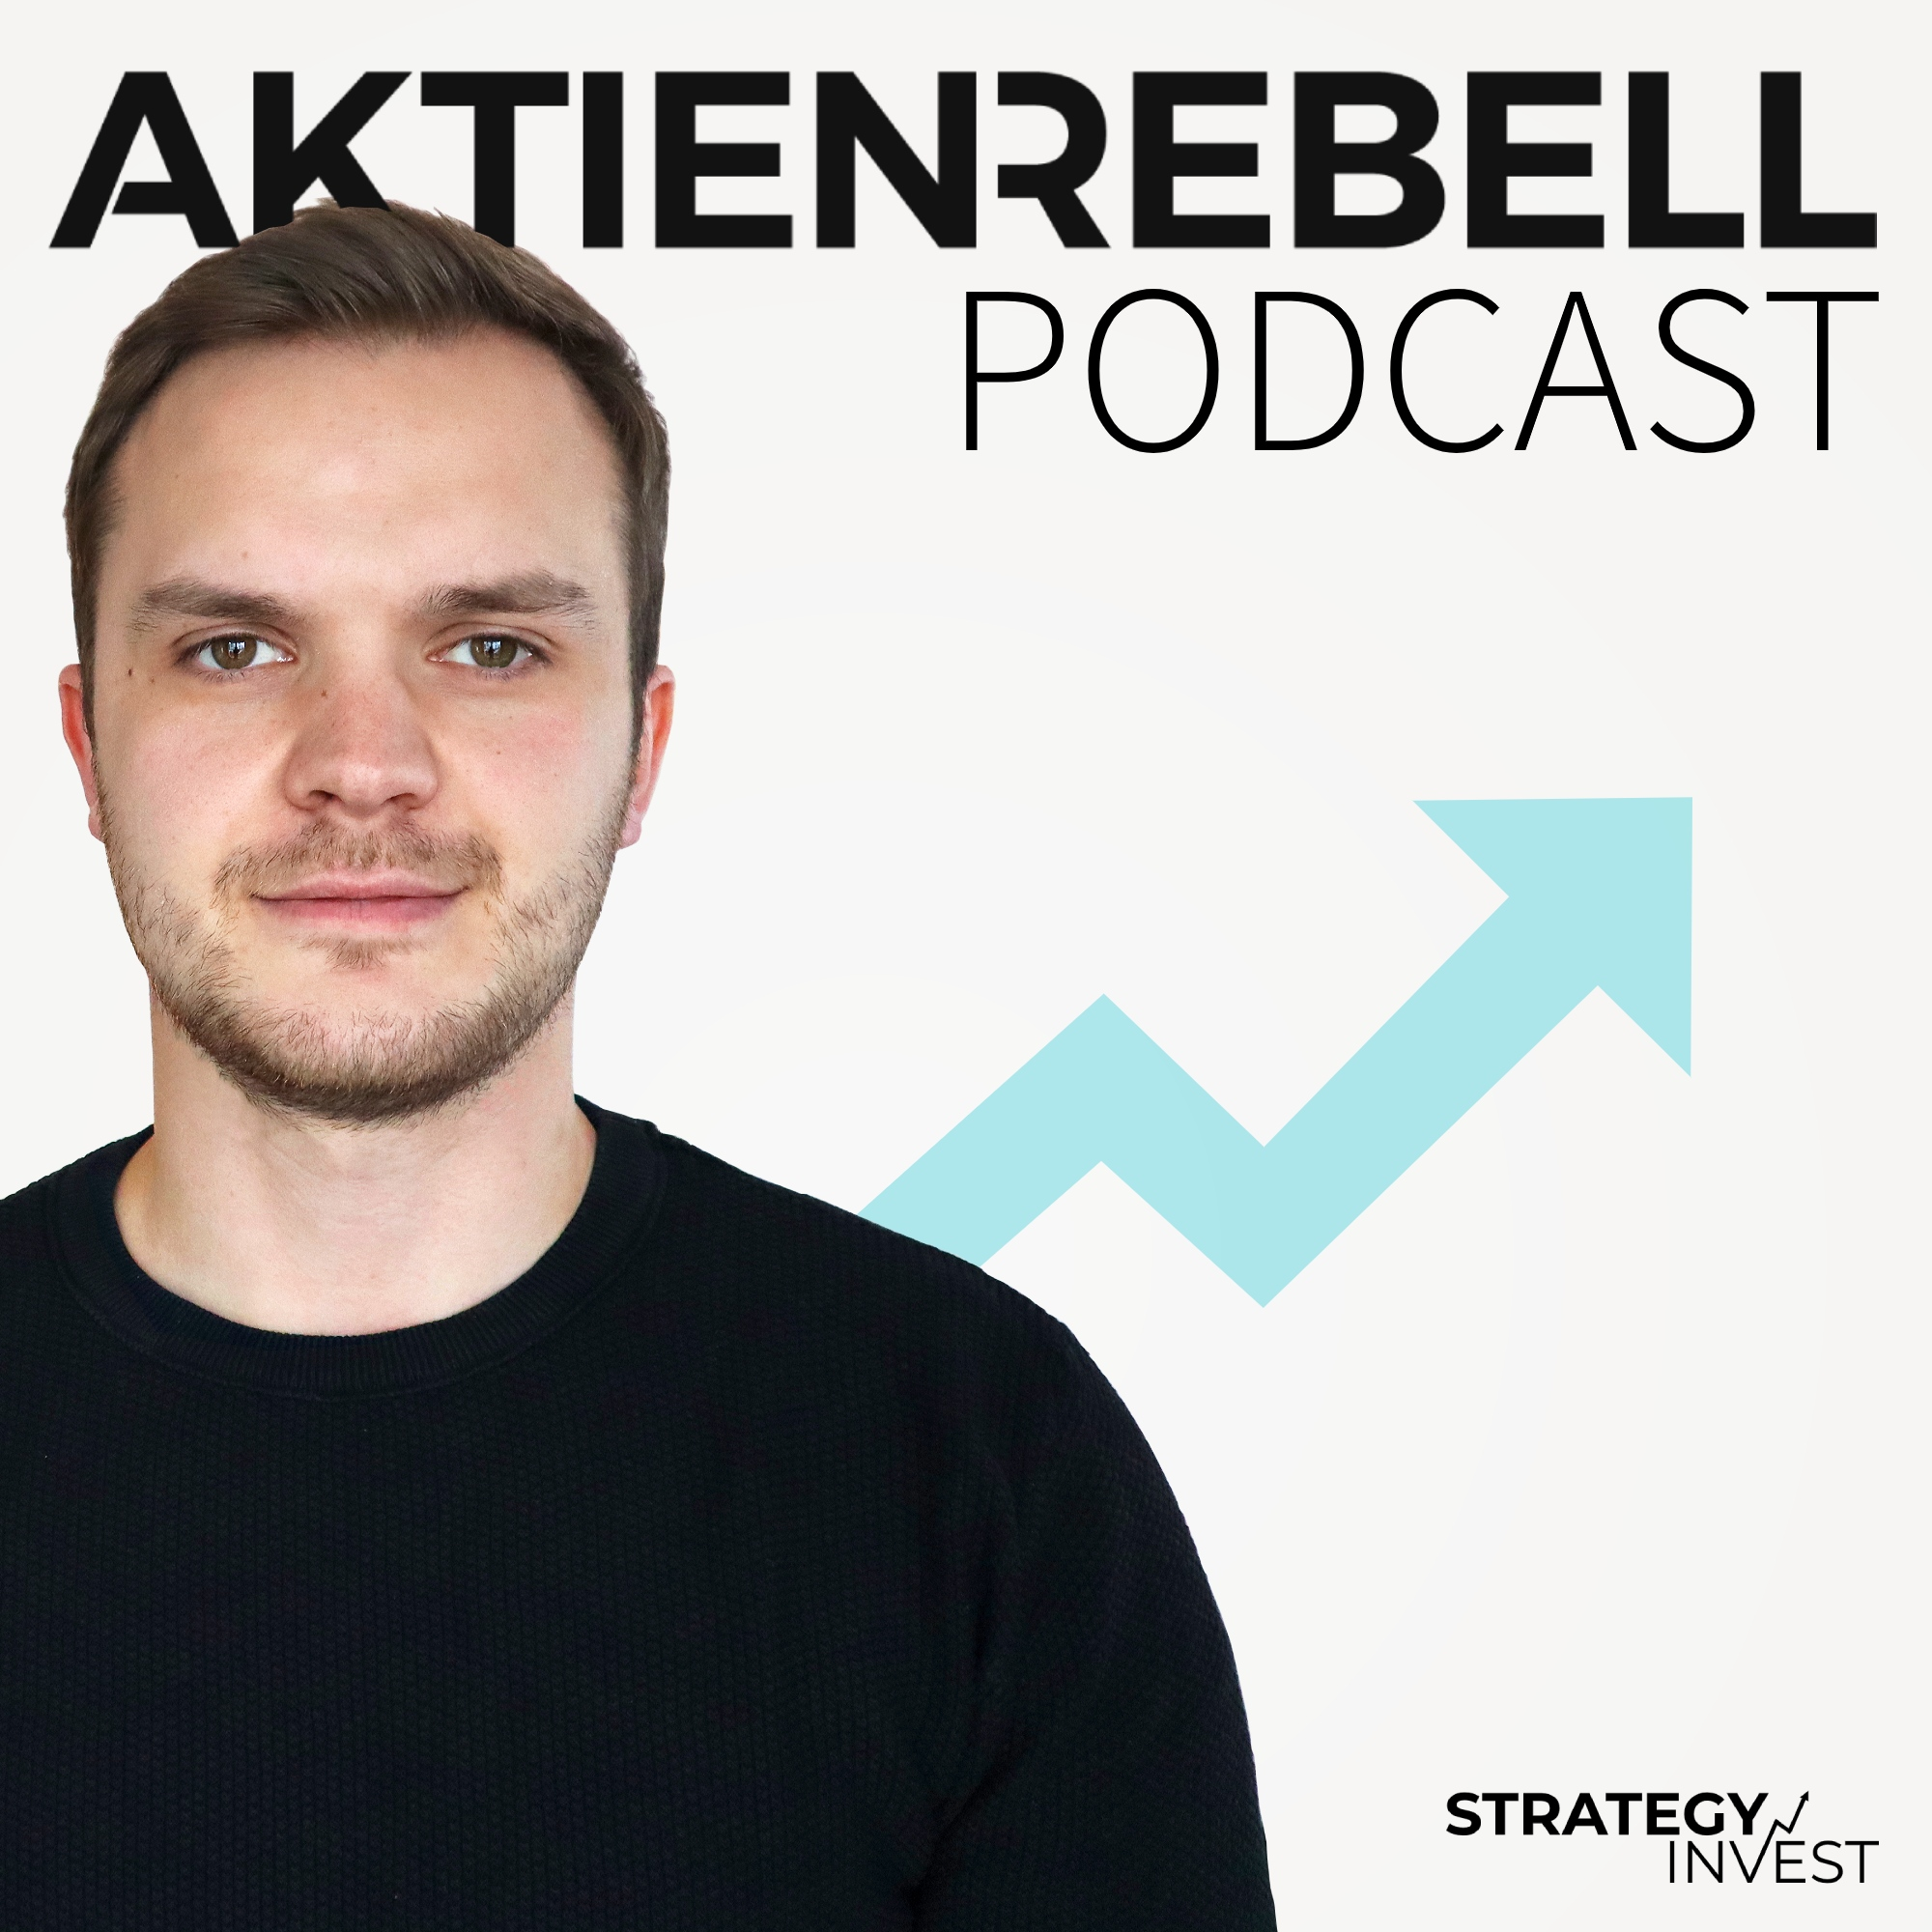 Aktienrebell Podcast